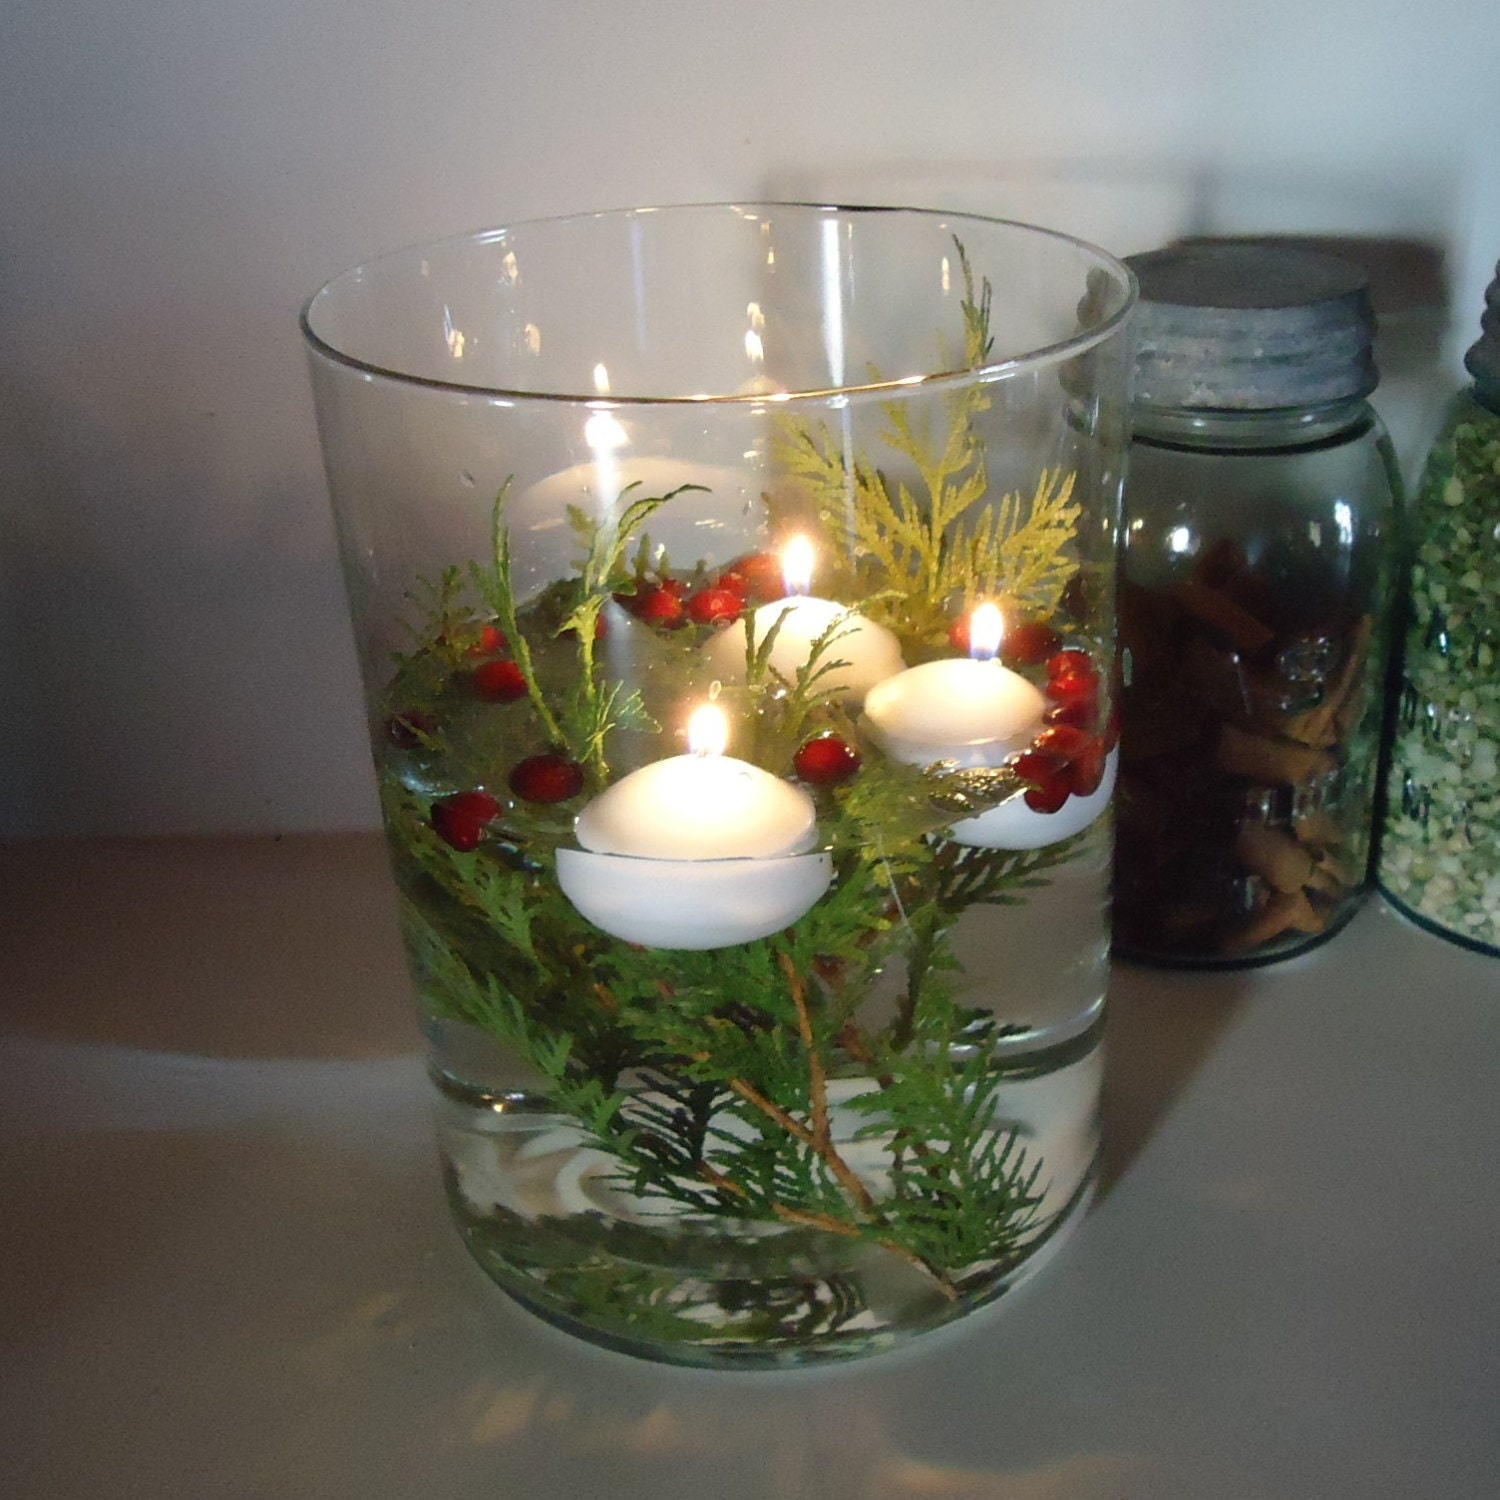 Easy Floating Candle Centerpieces: Floating Candle Water Candles Easy Centerpieces Party